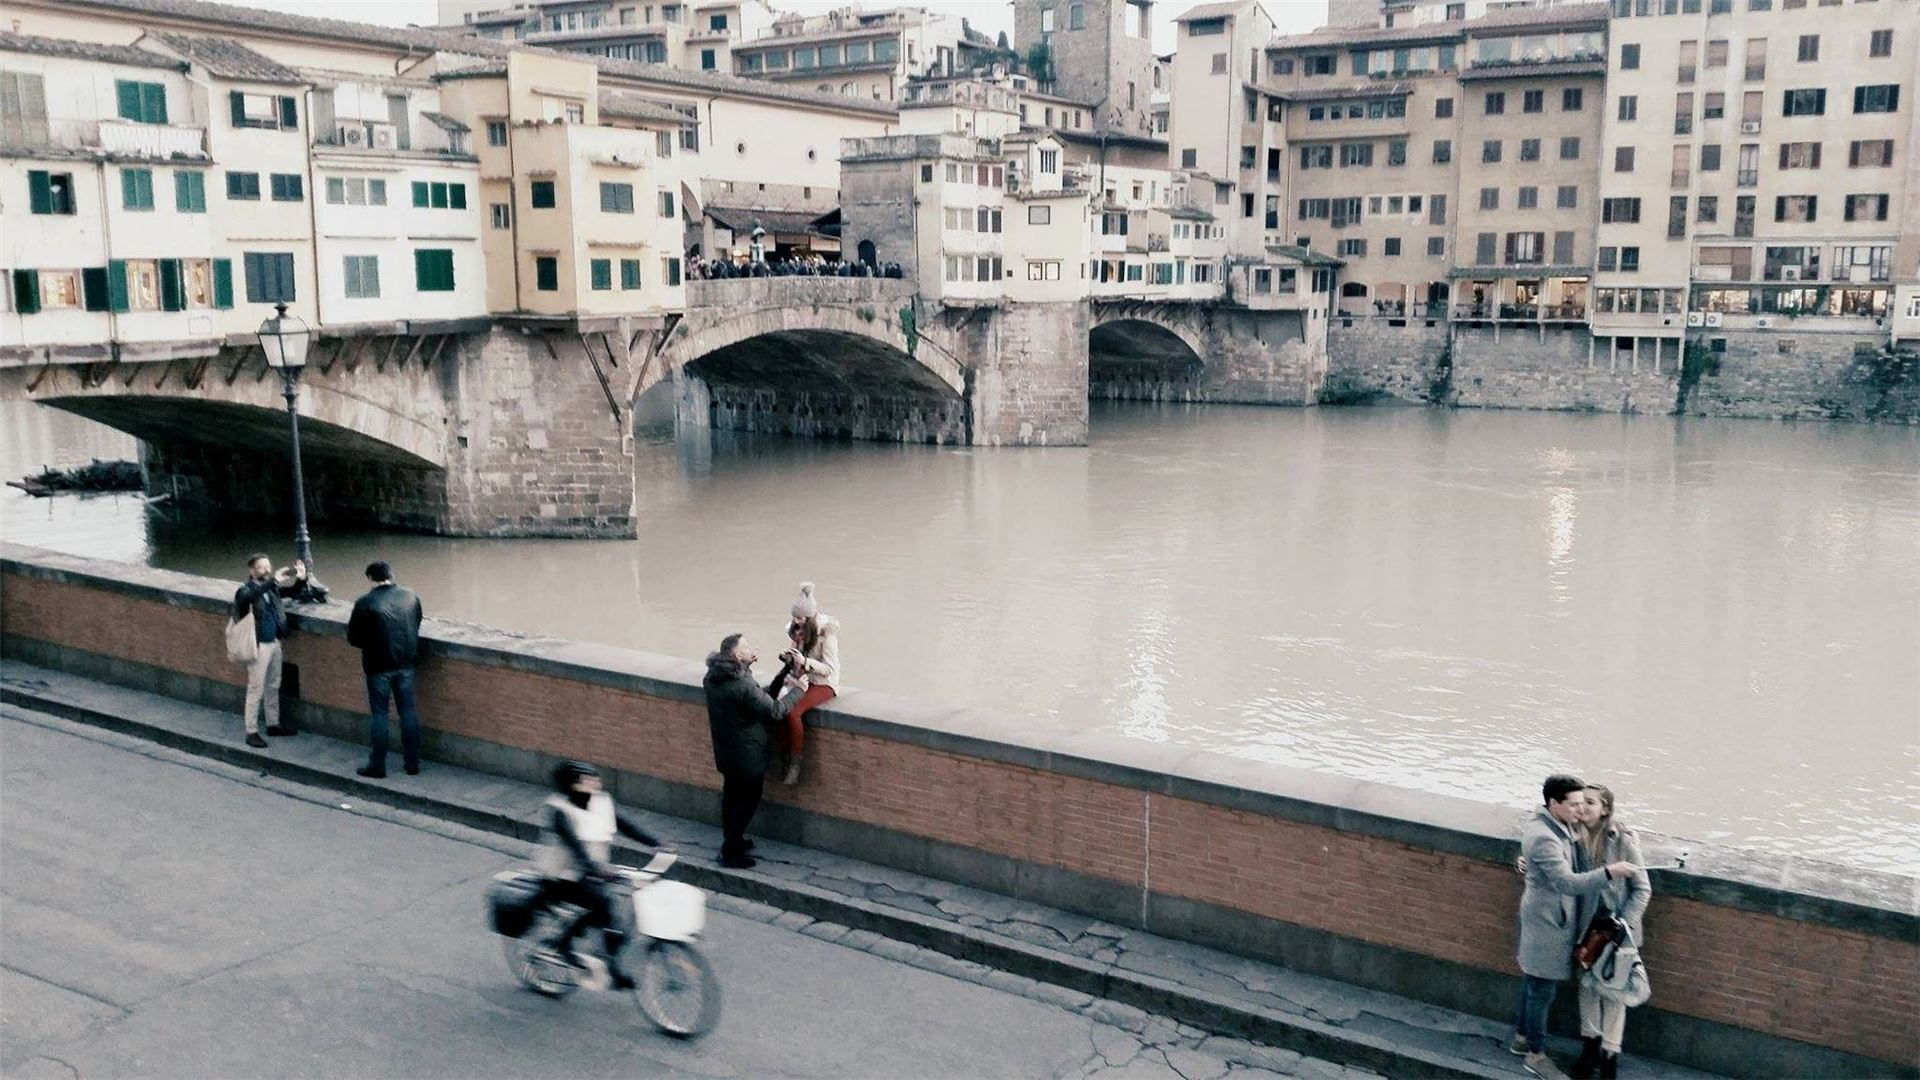 The Po River in Florence Photo: Lila Ermel Fox